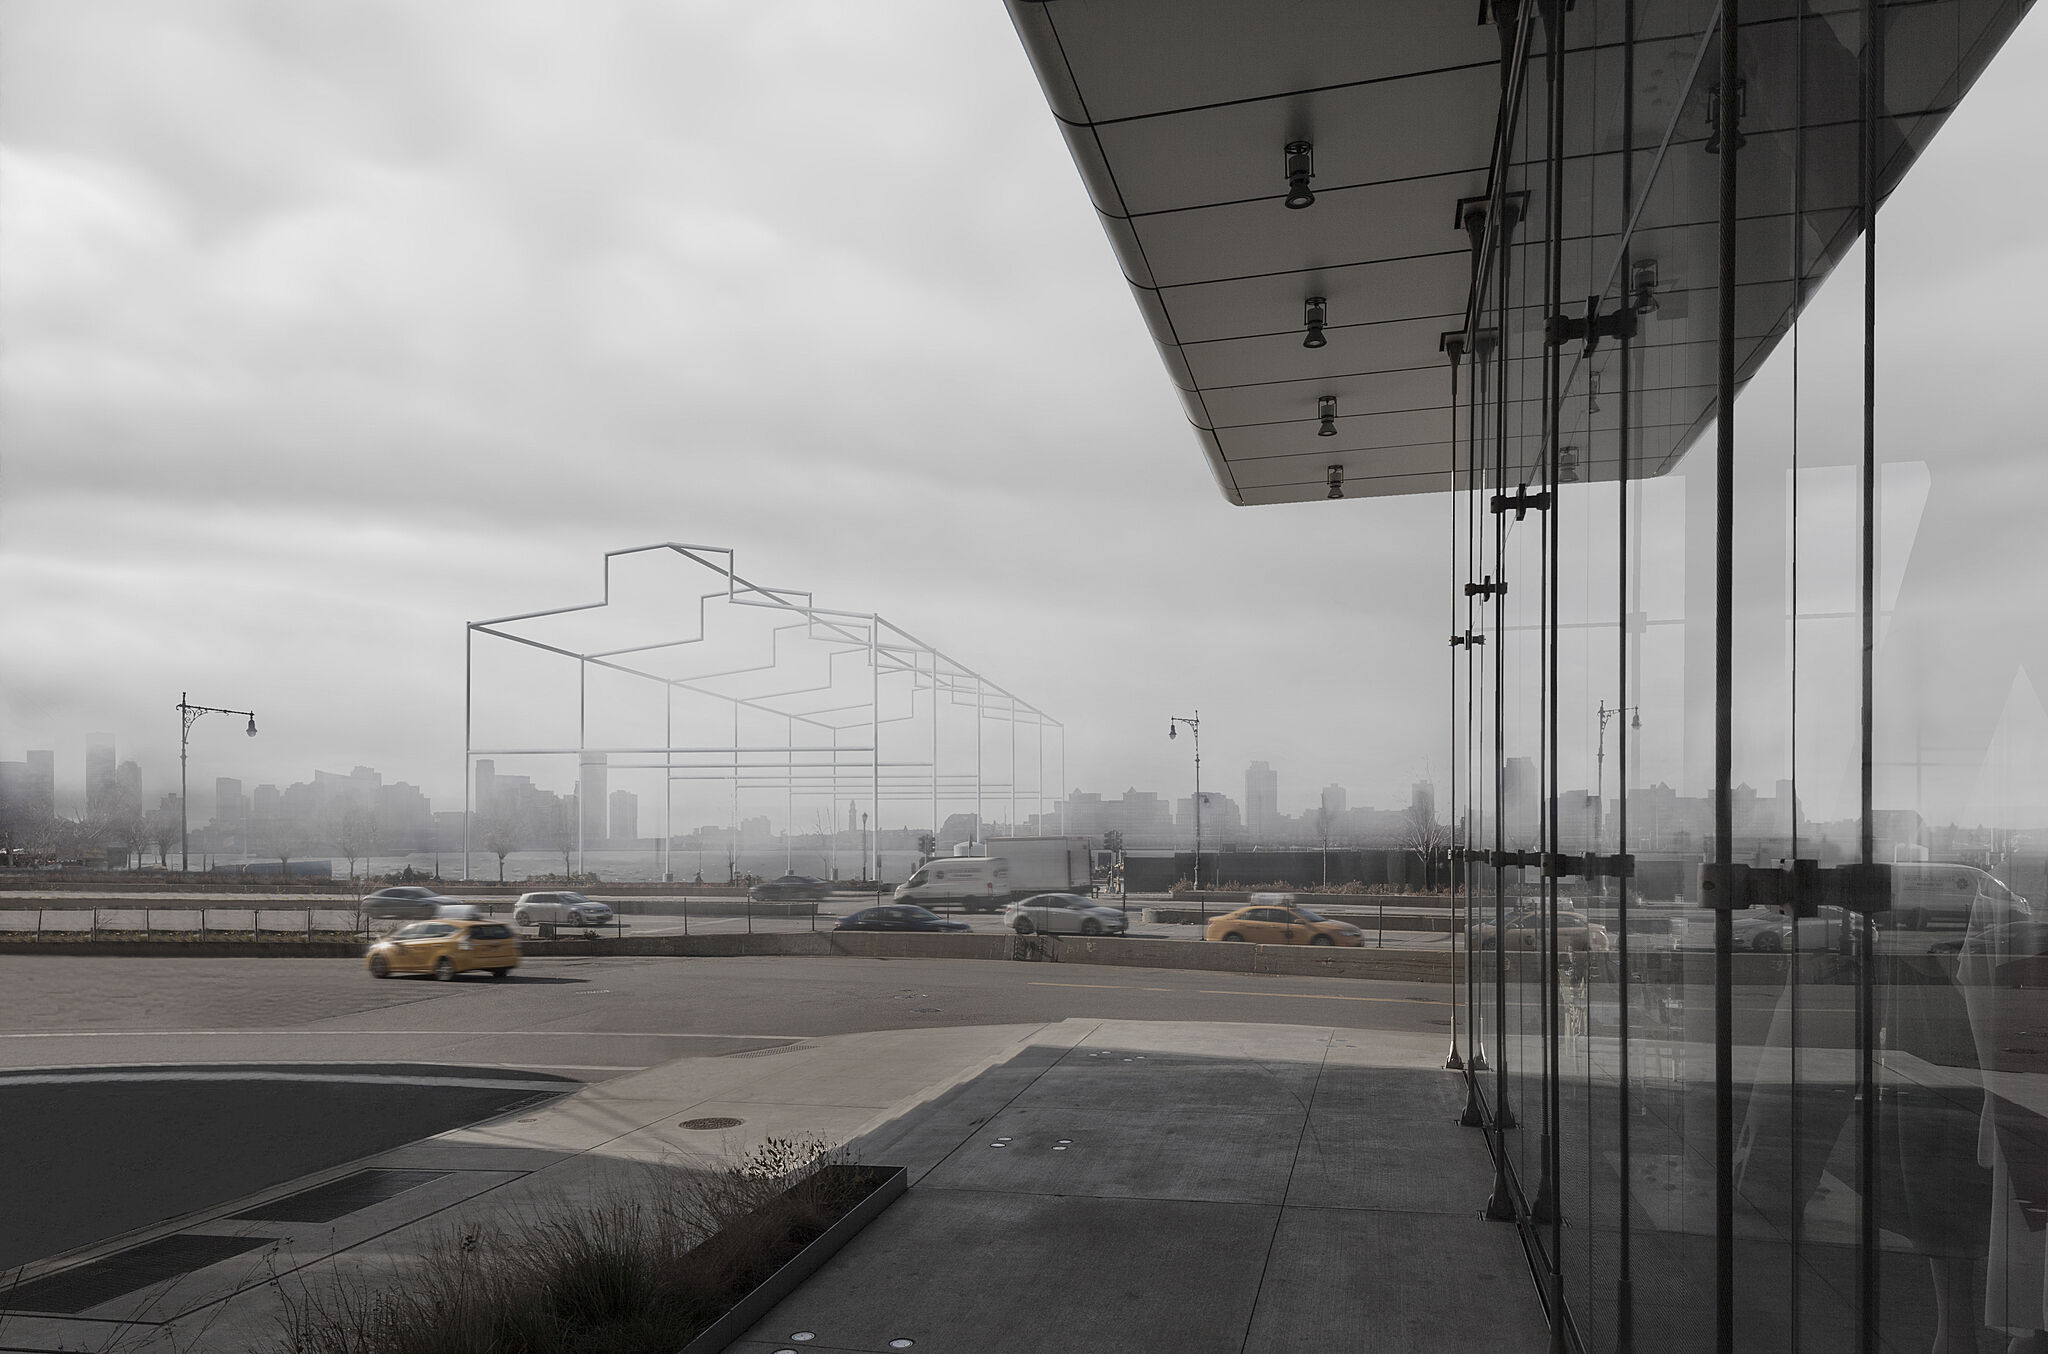 Rendering of a sculpture by David Hammons, resembling the frame of a shed rising from the Hudson River, viewed in fog